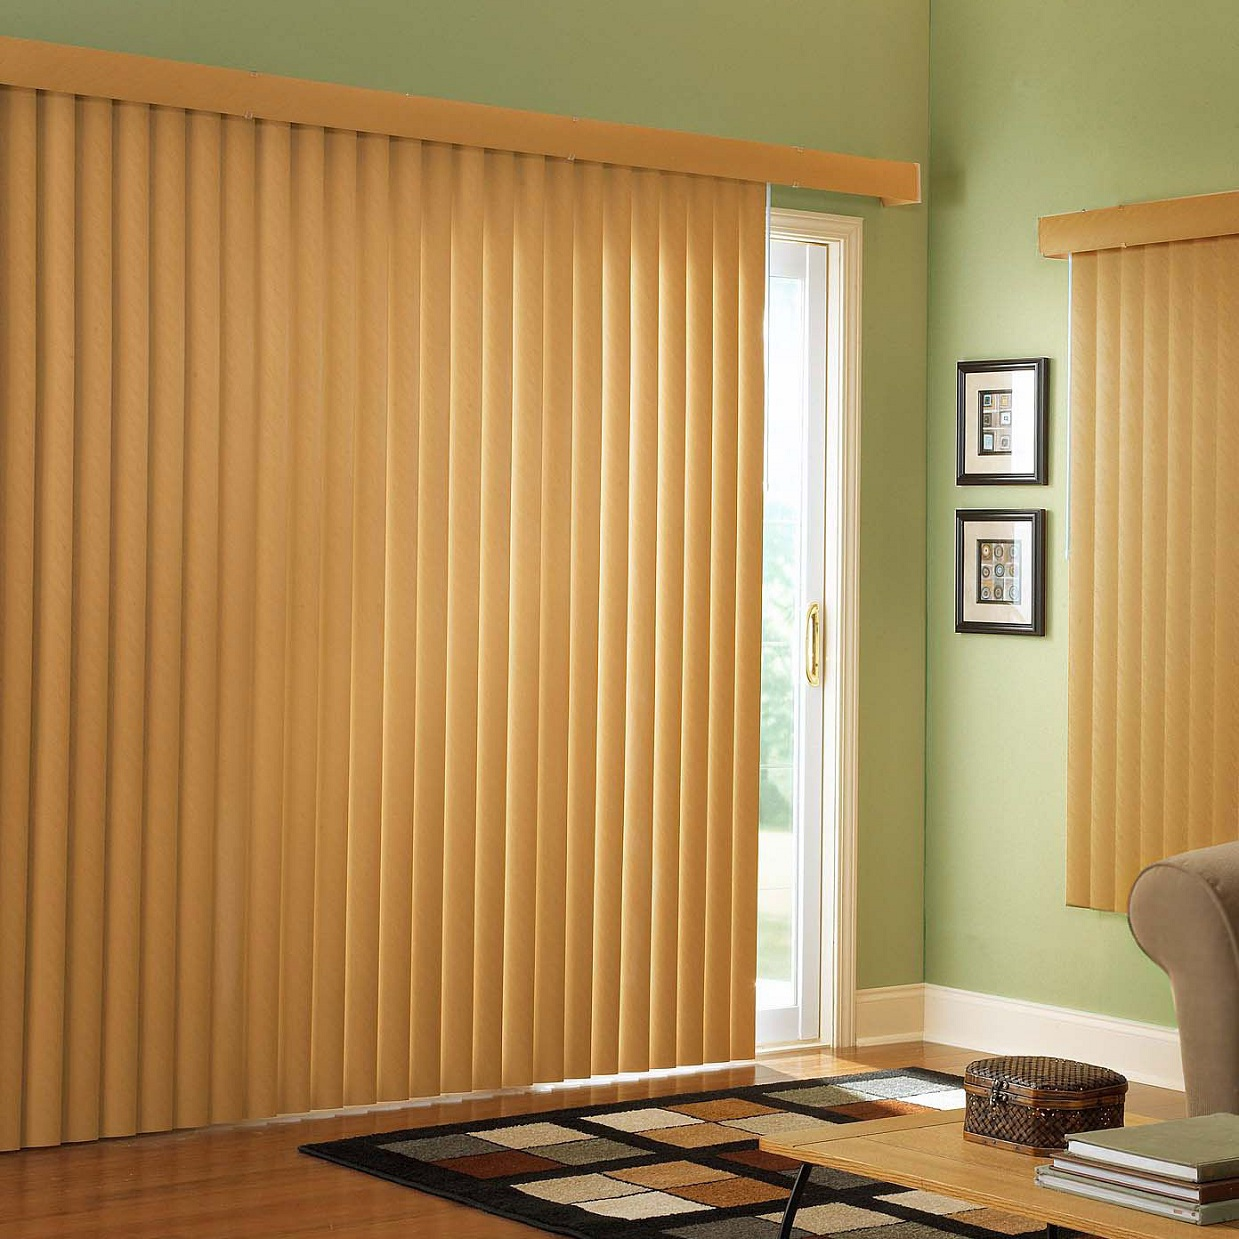 Vertical blinds for sliding glass doors window treatment ideas hgnv view in gallery sliding patio doors with blinds eventelaan Images